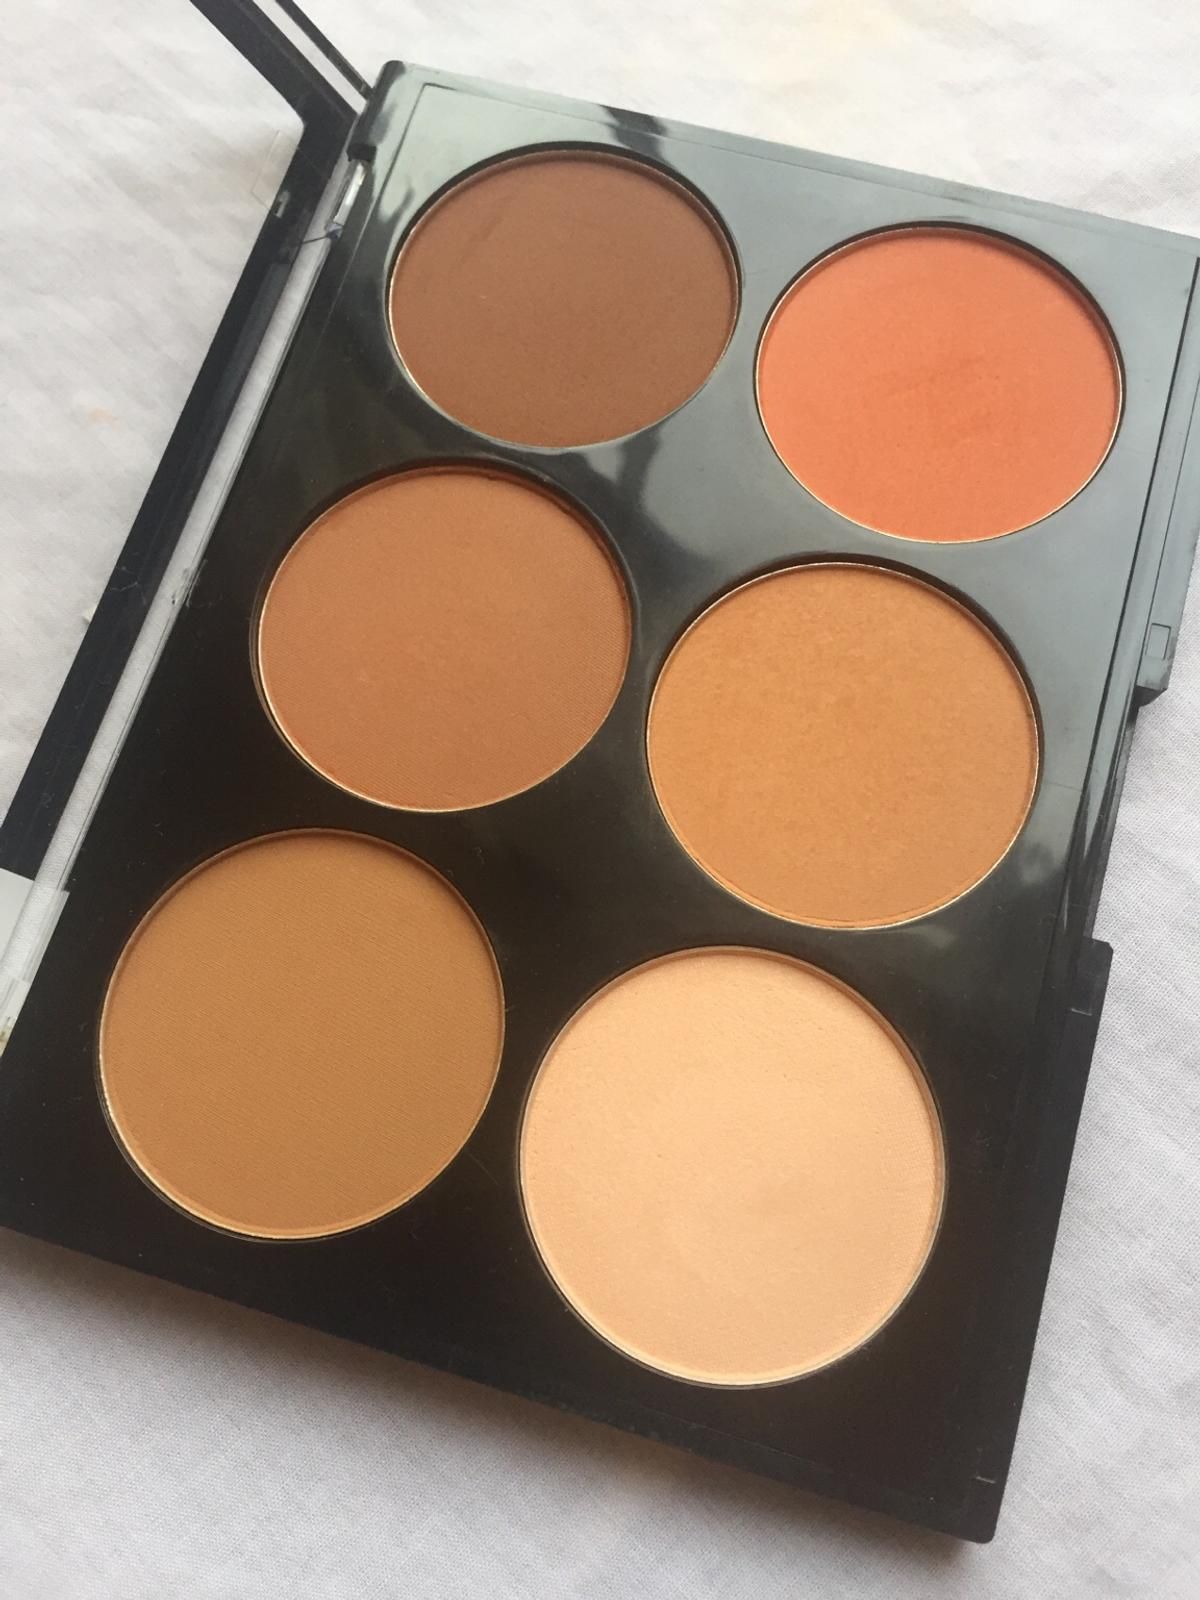 £5 Each (no half price offers please 😊)  Nip + Fab Contour Palette Shade: 03 Dark  Elizabeth Arden - Flawless Finish Cream Foundation Shade: Honey Beige 09  Products have only been swatched Very good condition No returns please